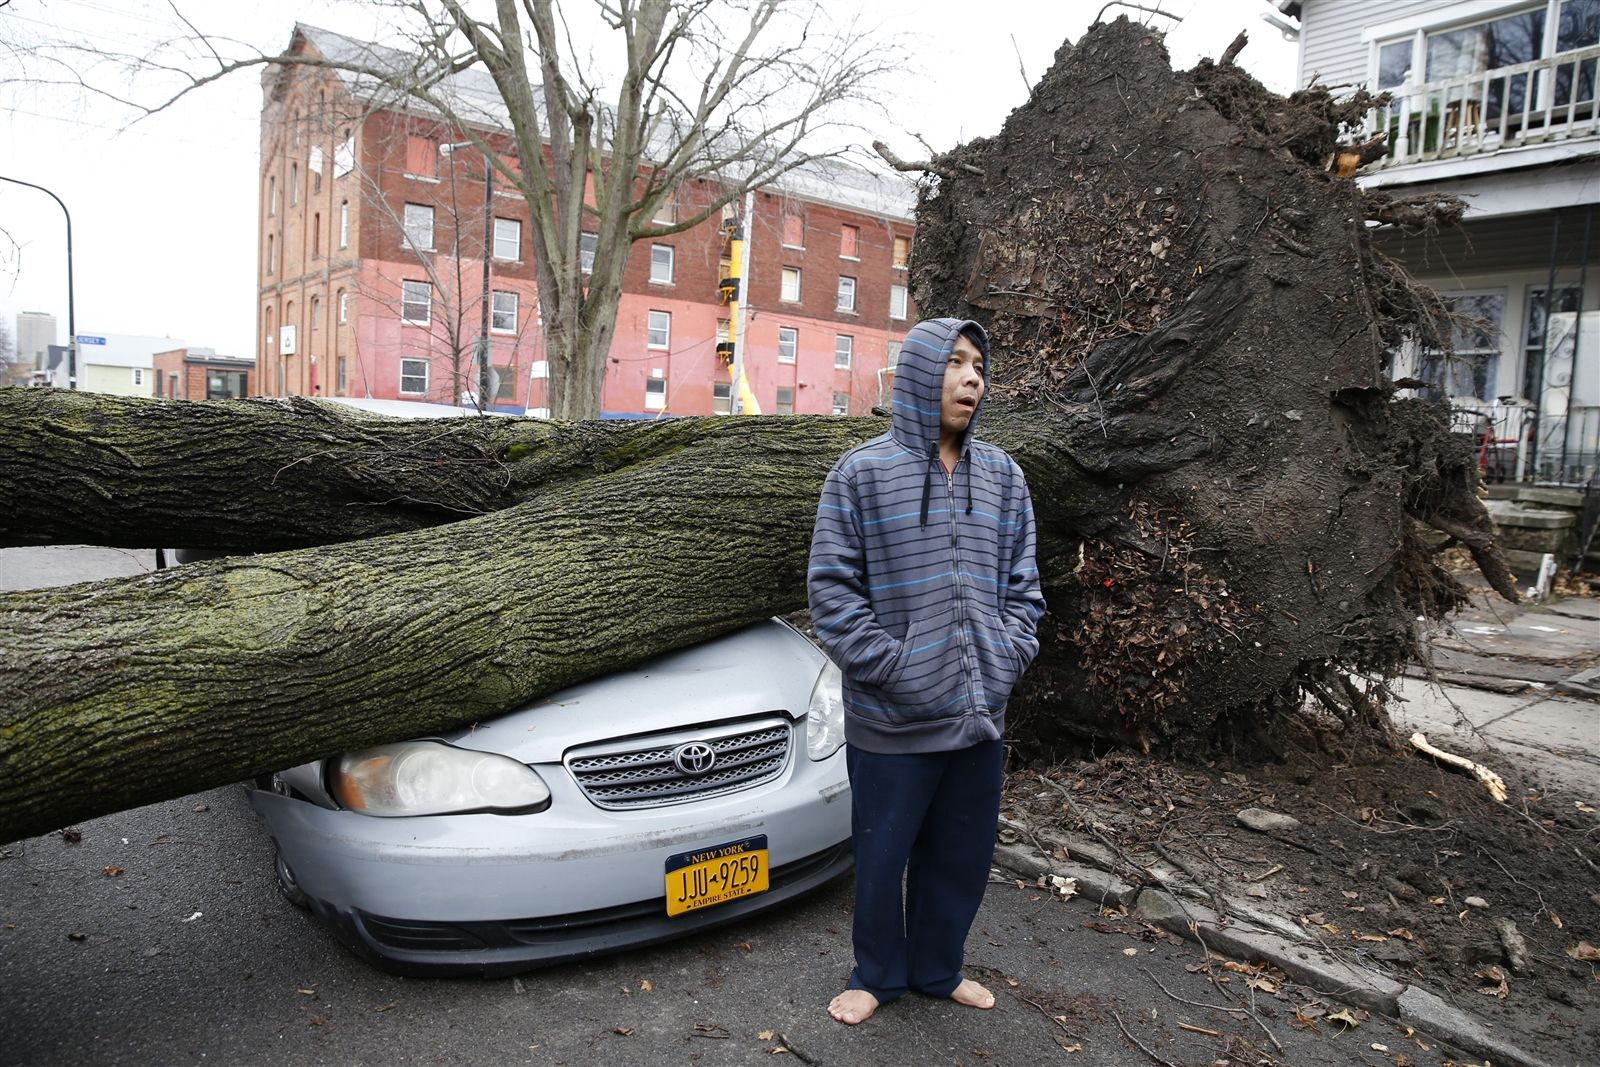 Toe Ley awoke on Sunday, Jan. 12, 2020, to see his car totaled into a pancake under the weight of a tree on 7th Street in Buffalo.